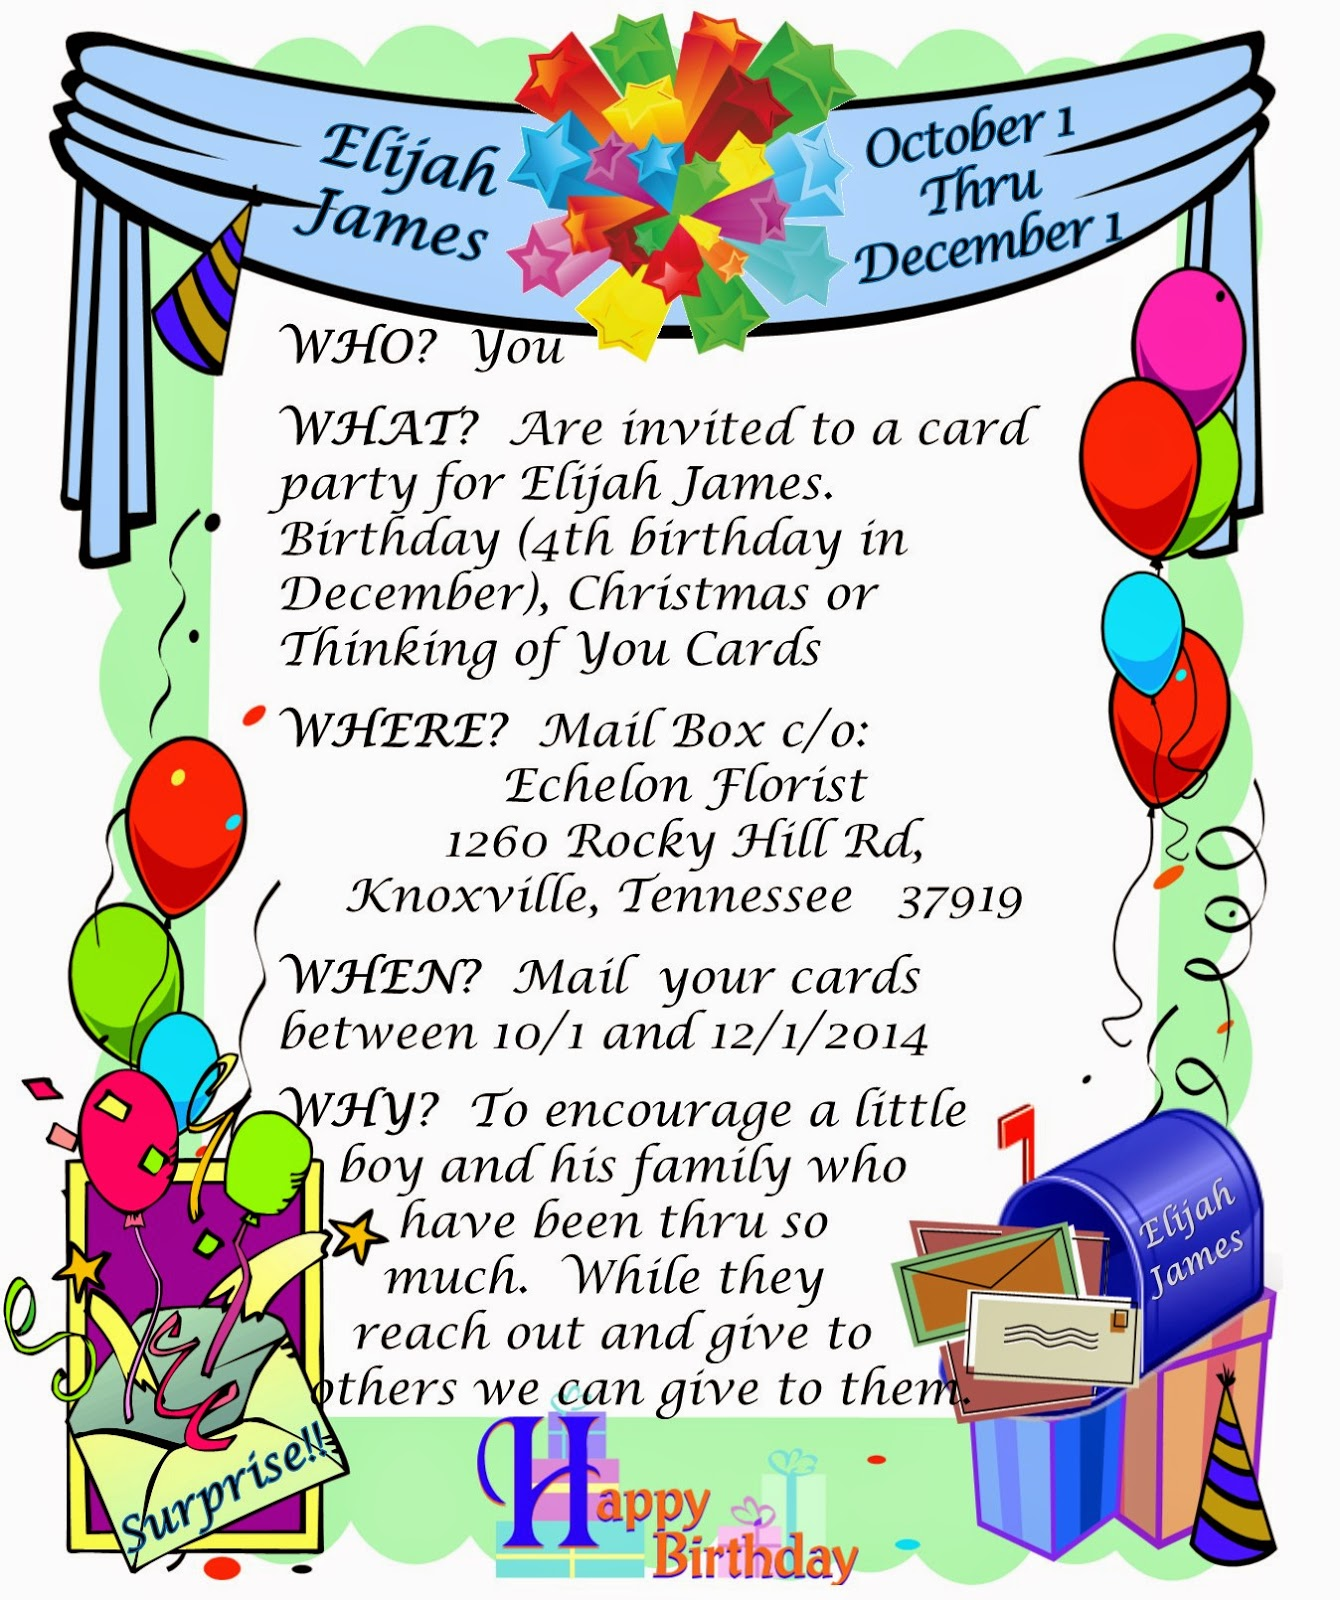 Elijah James Card Party Invitation